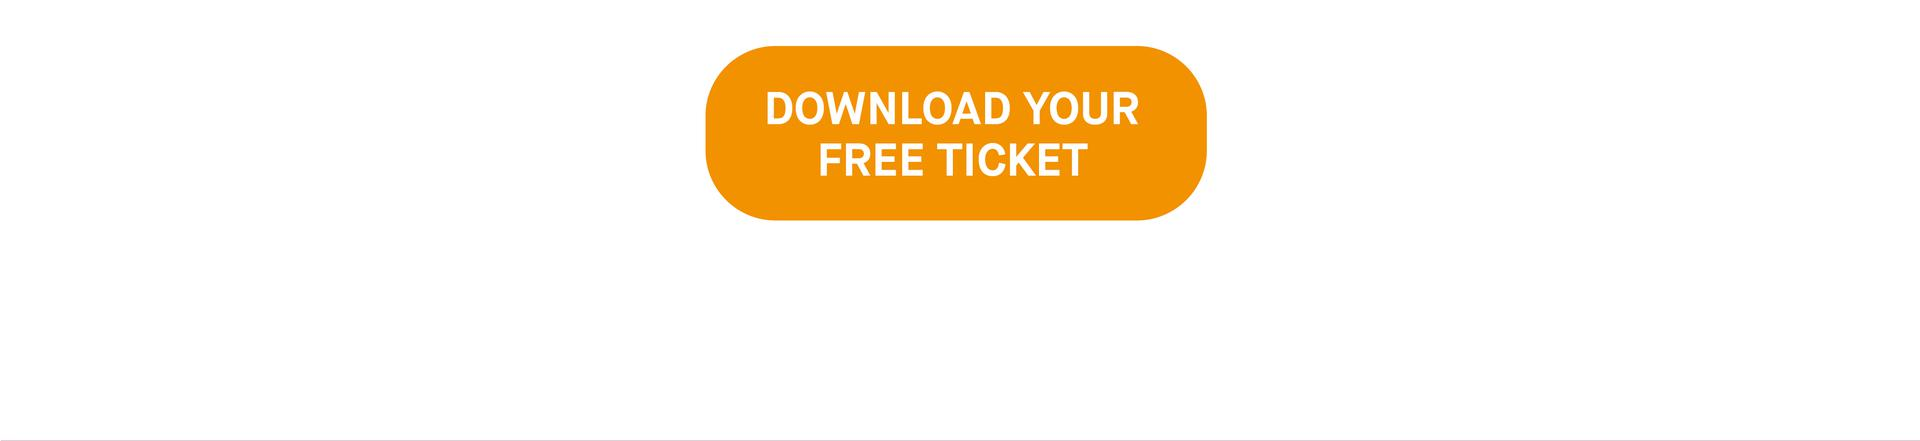 DOWNLOAD YOUR FREE ENTRANCE TICKET